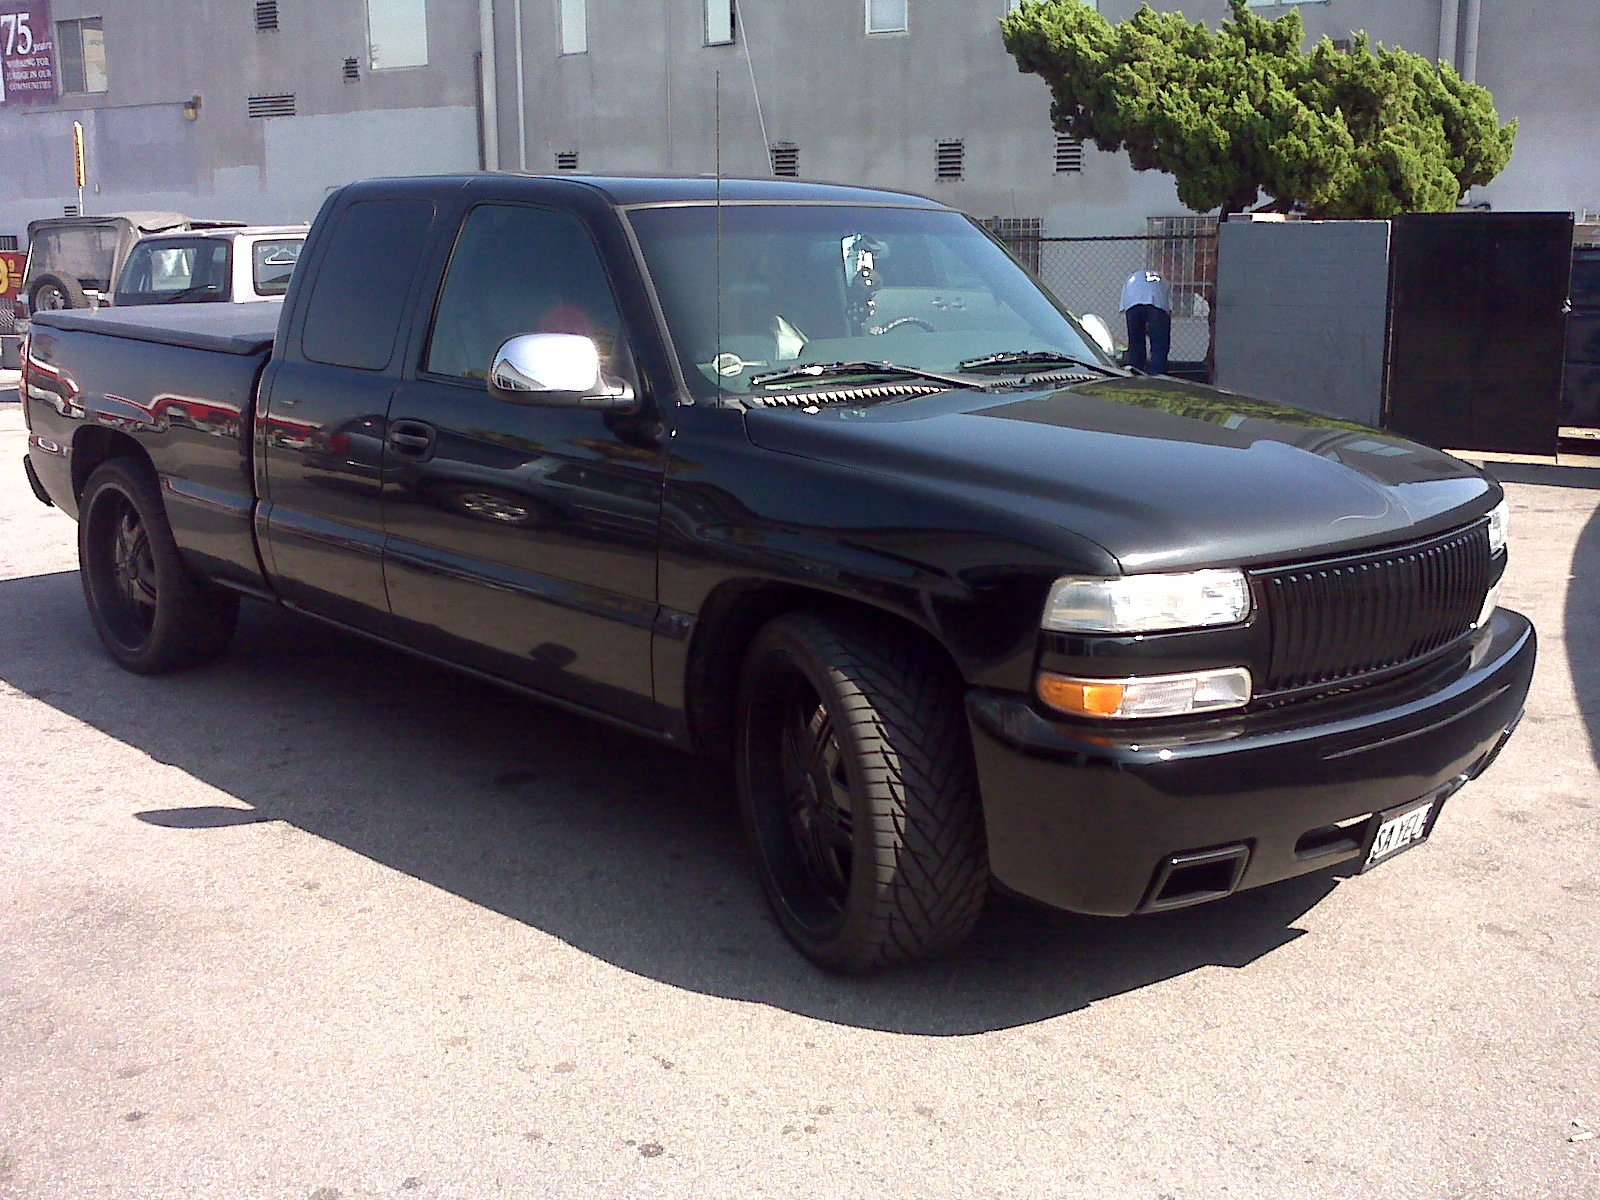 angeldogg 2001 chevrolet silverado 1500 regular cab specs photos modification info at cardomain. Black Bedroom Furniture Sets. Home Design Ideas